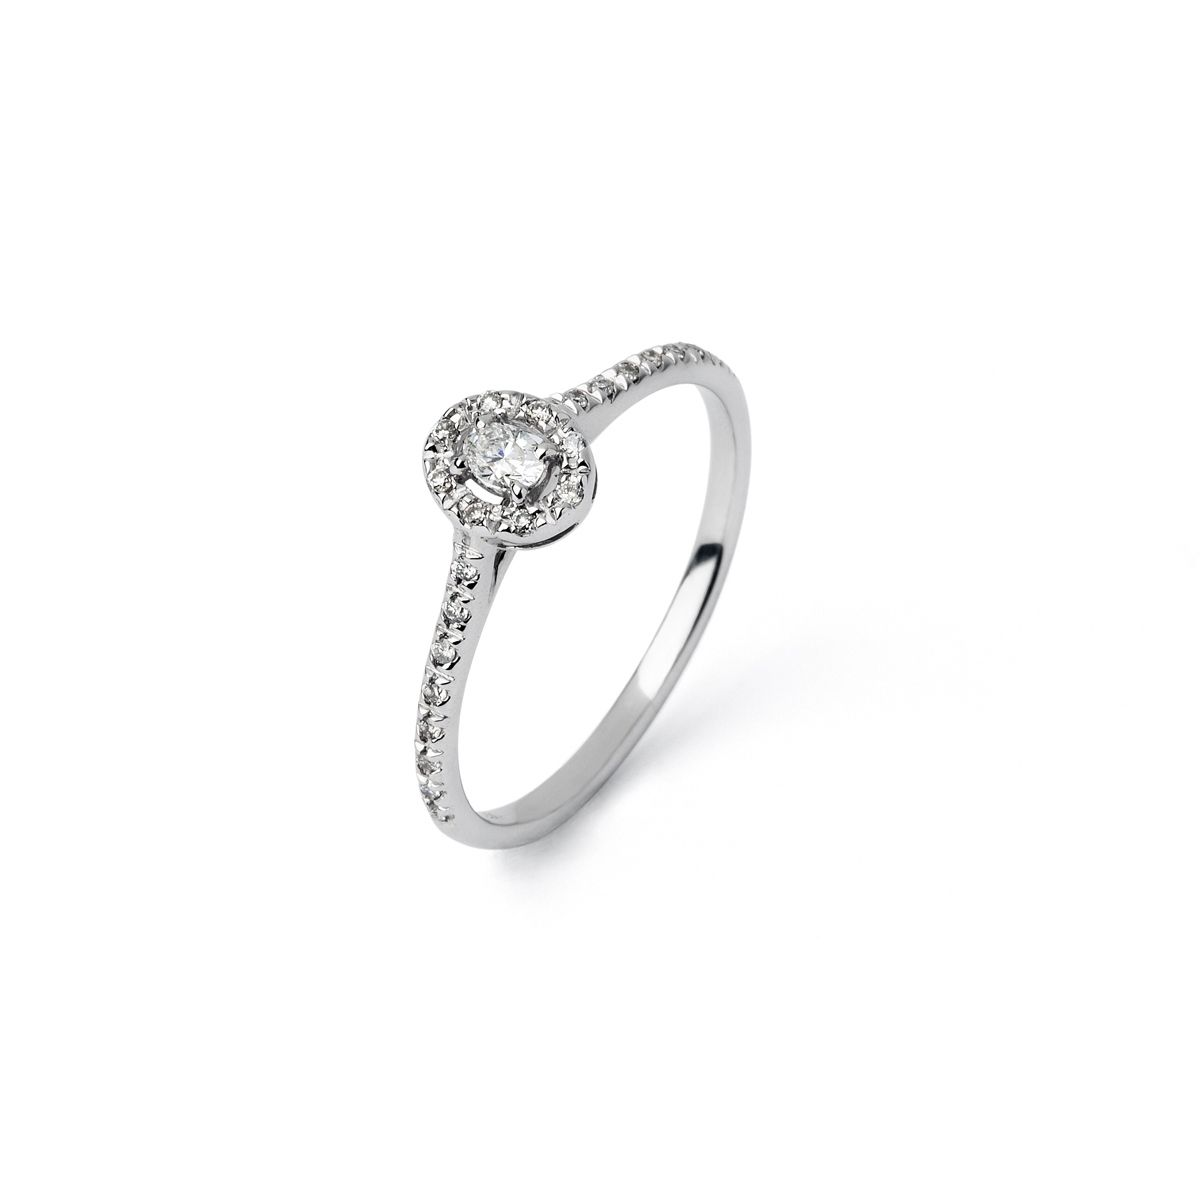 Bague en or blanc et diamants de 0.16ct